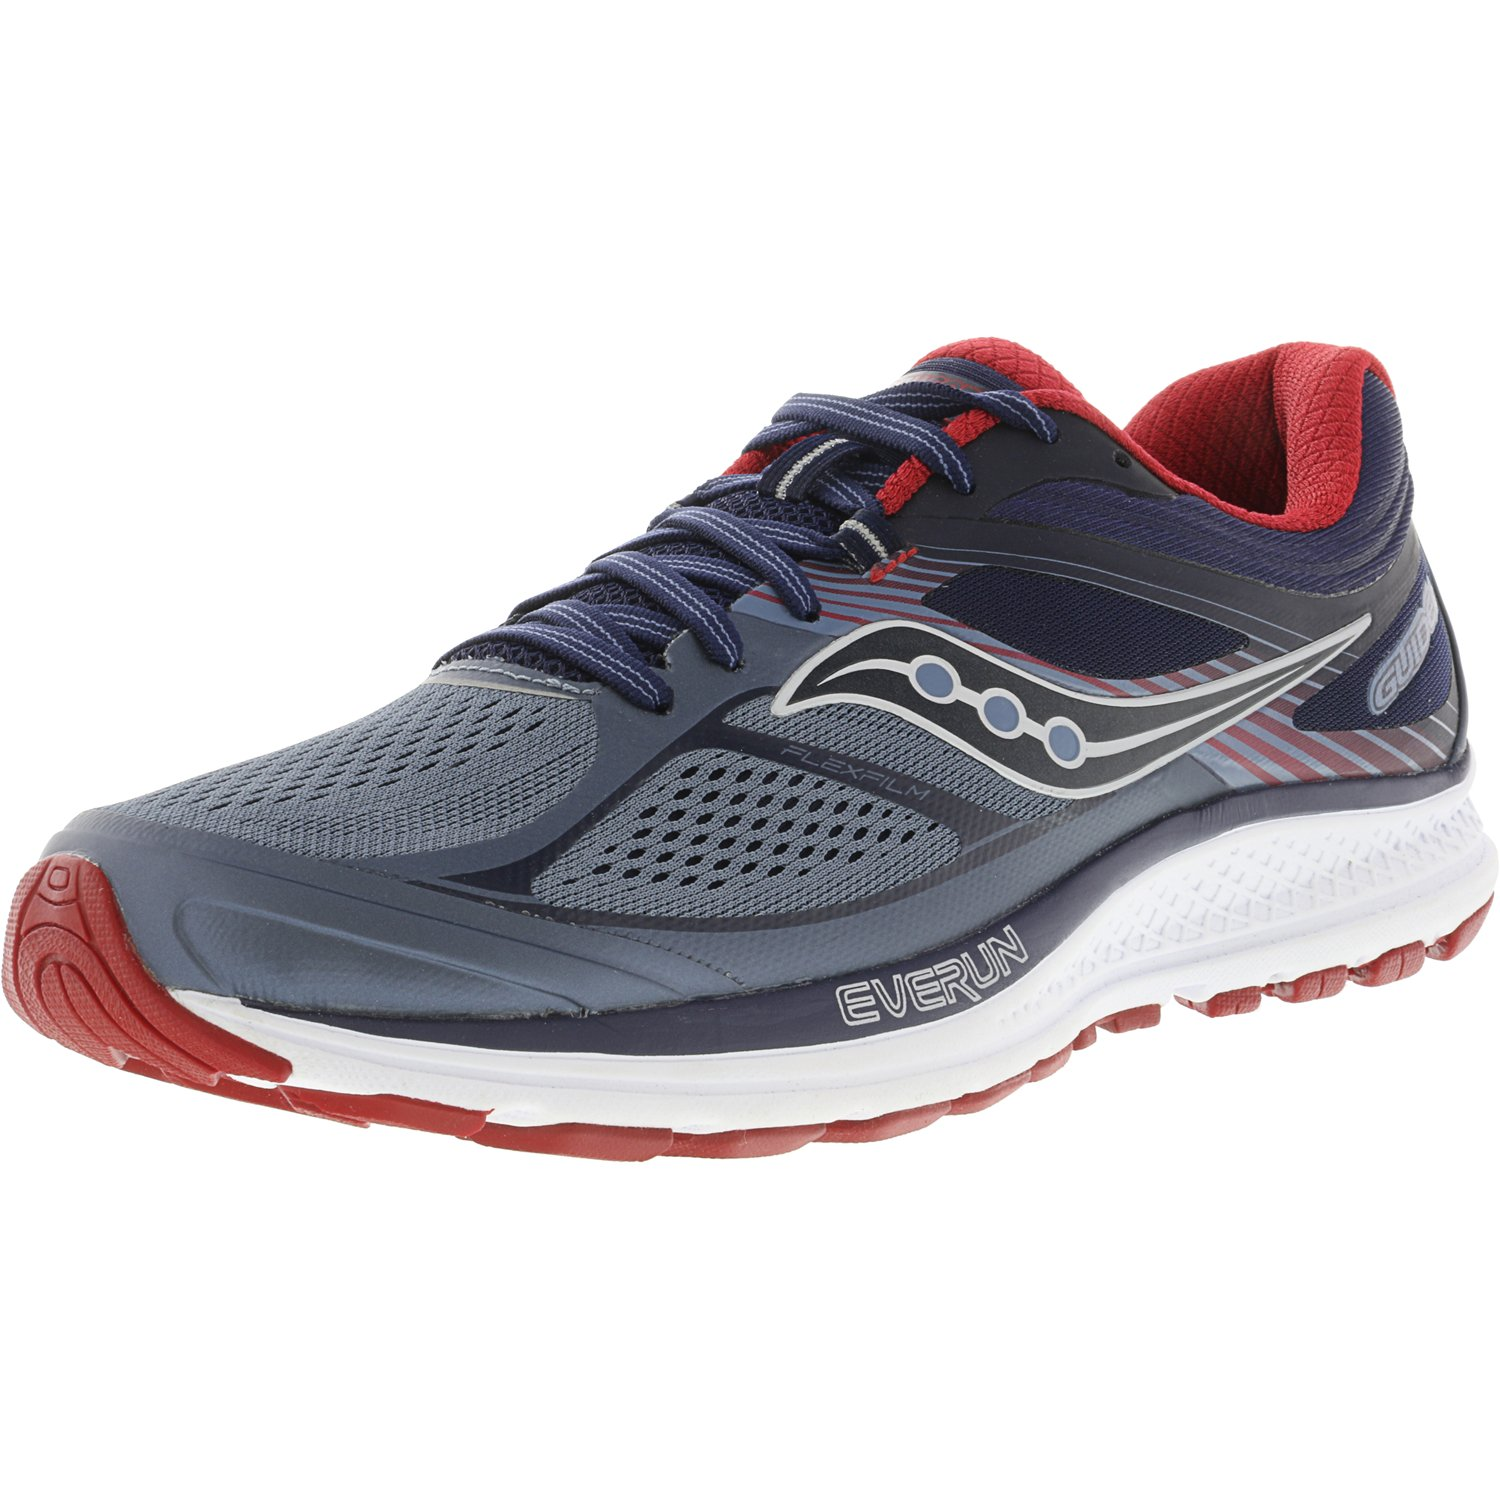 Saucony Men's Guide 10 Lime   Black Citron Ankle-High Running Shoe 9.5M by Saucony